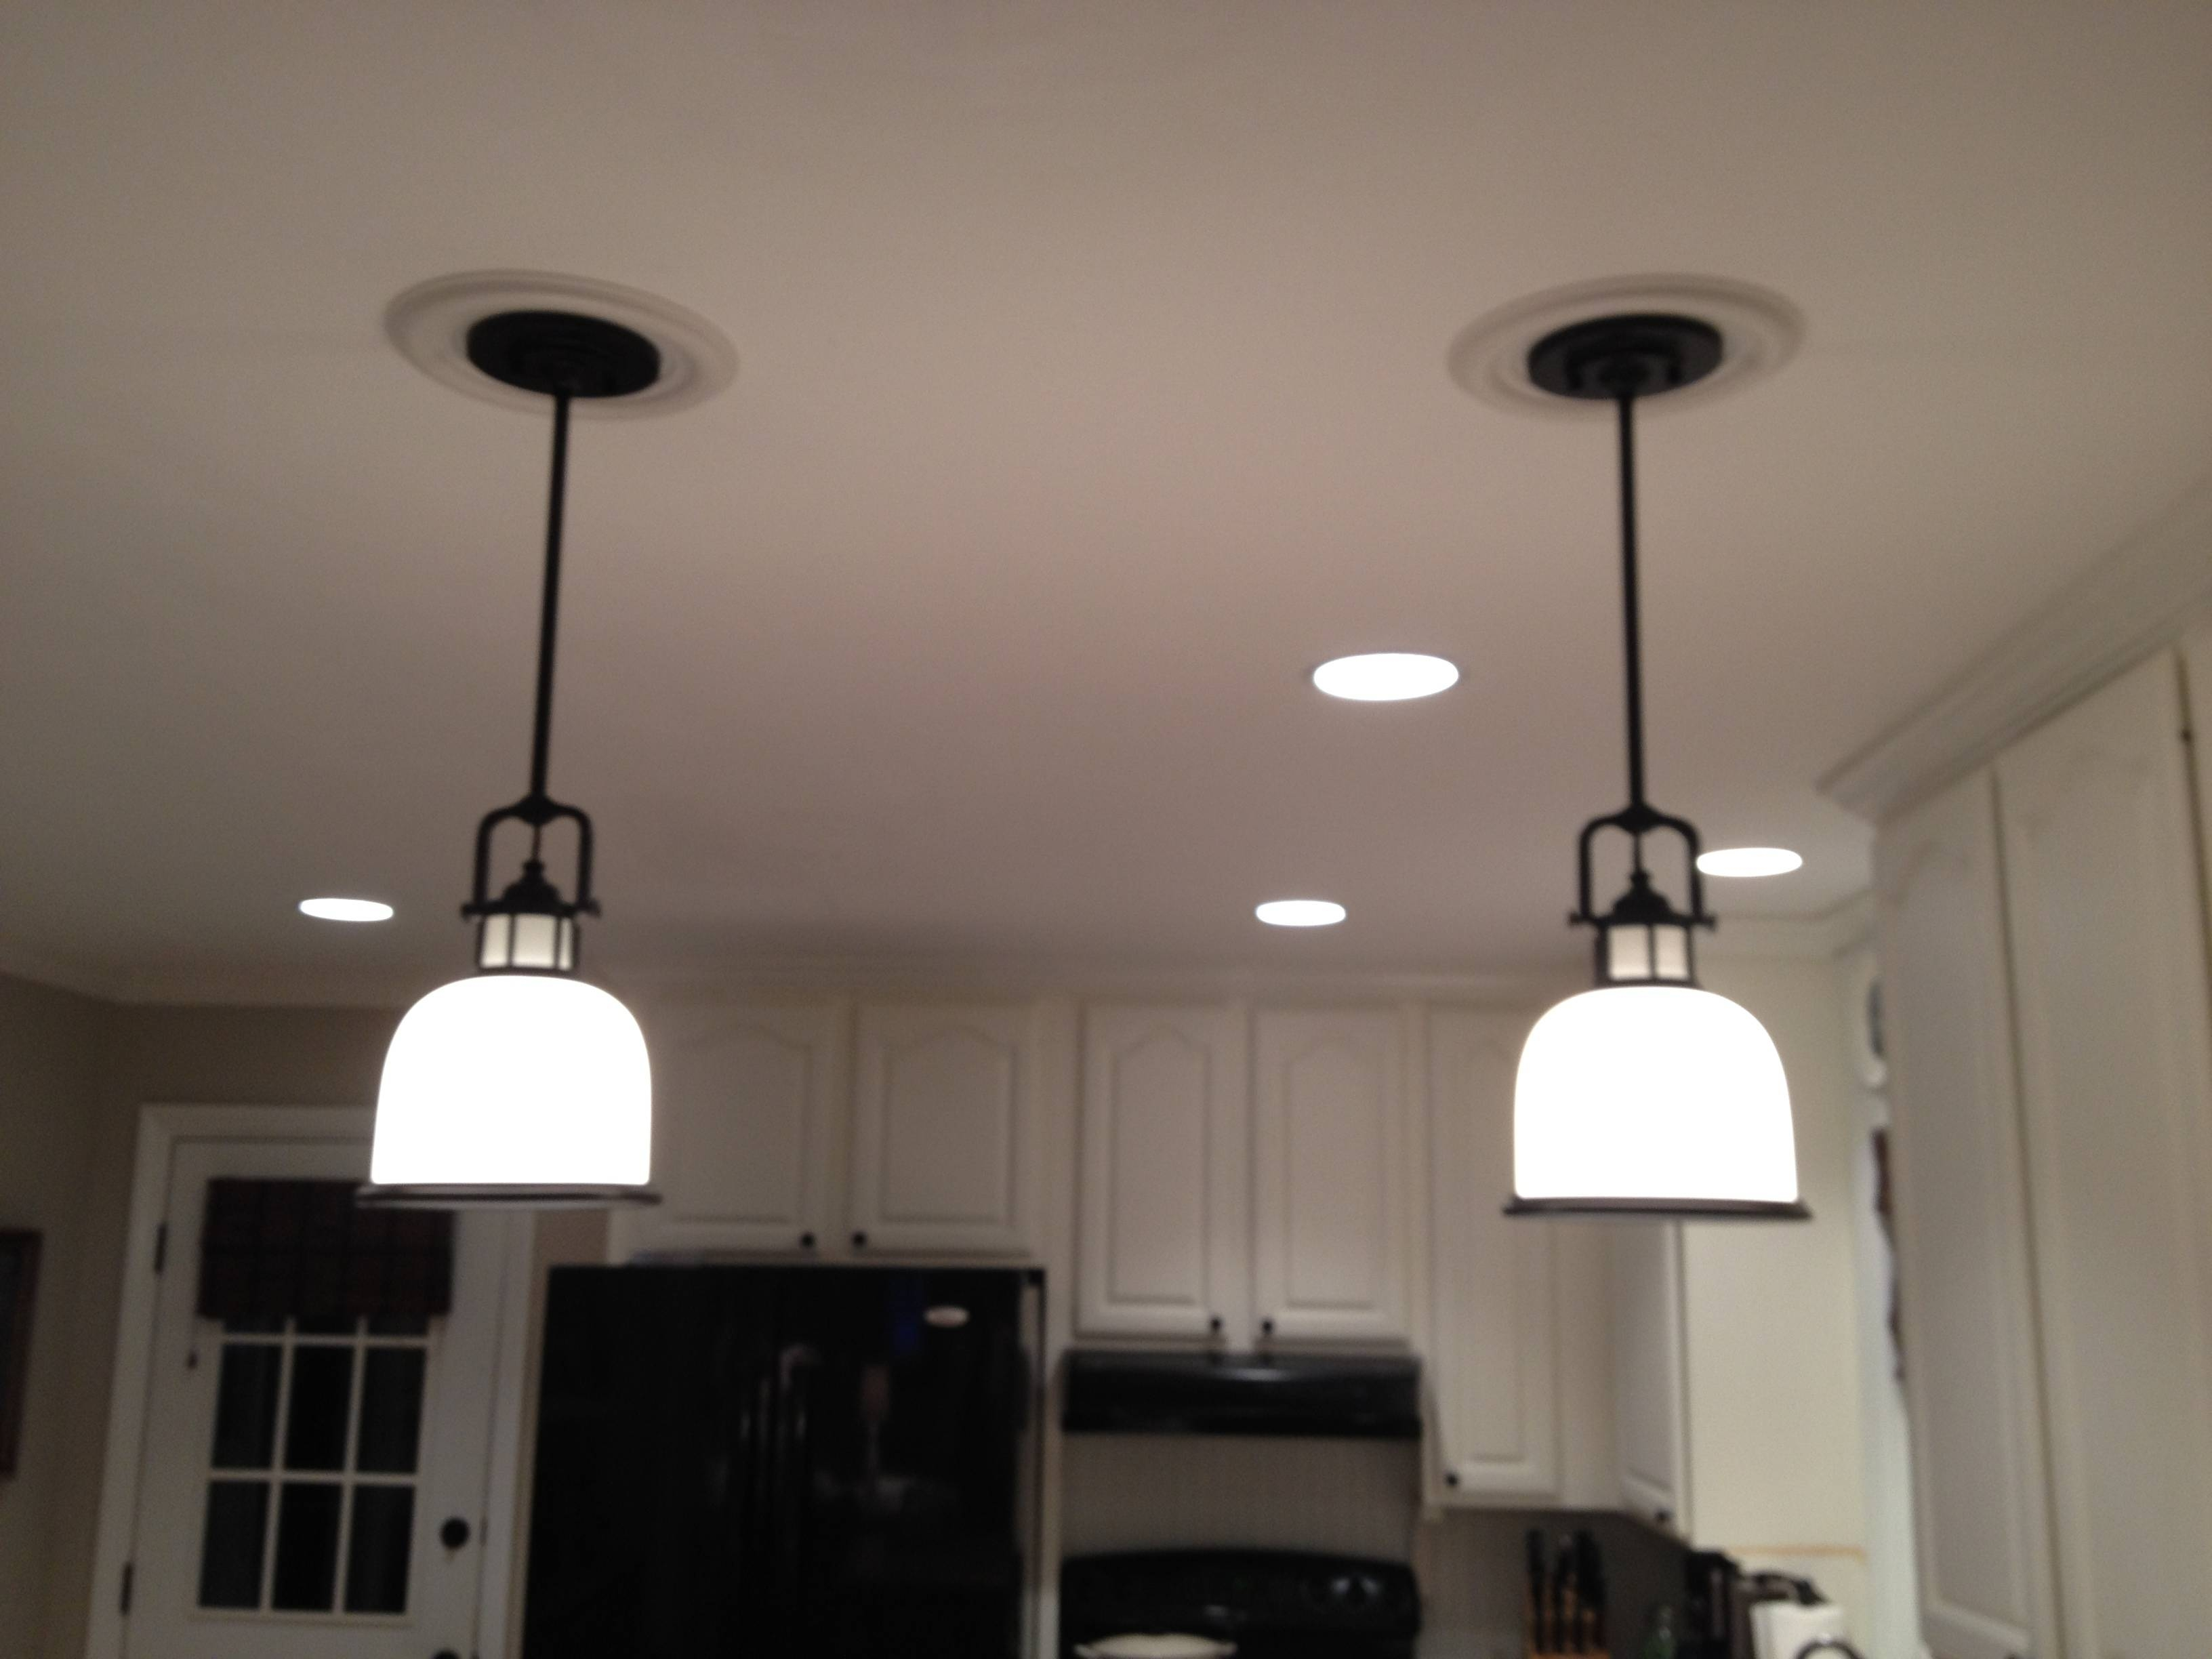 Stunning Recessed Light To Pendant 35 In Maritime Pendant Light inside Can Lights to Pendant Lights (Image 12 of 15)